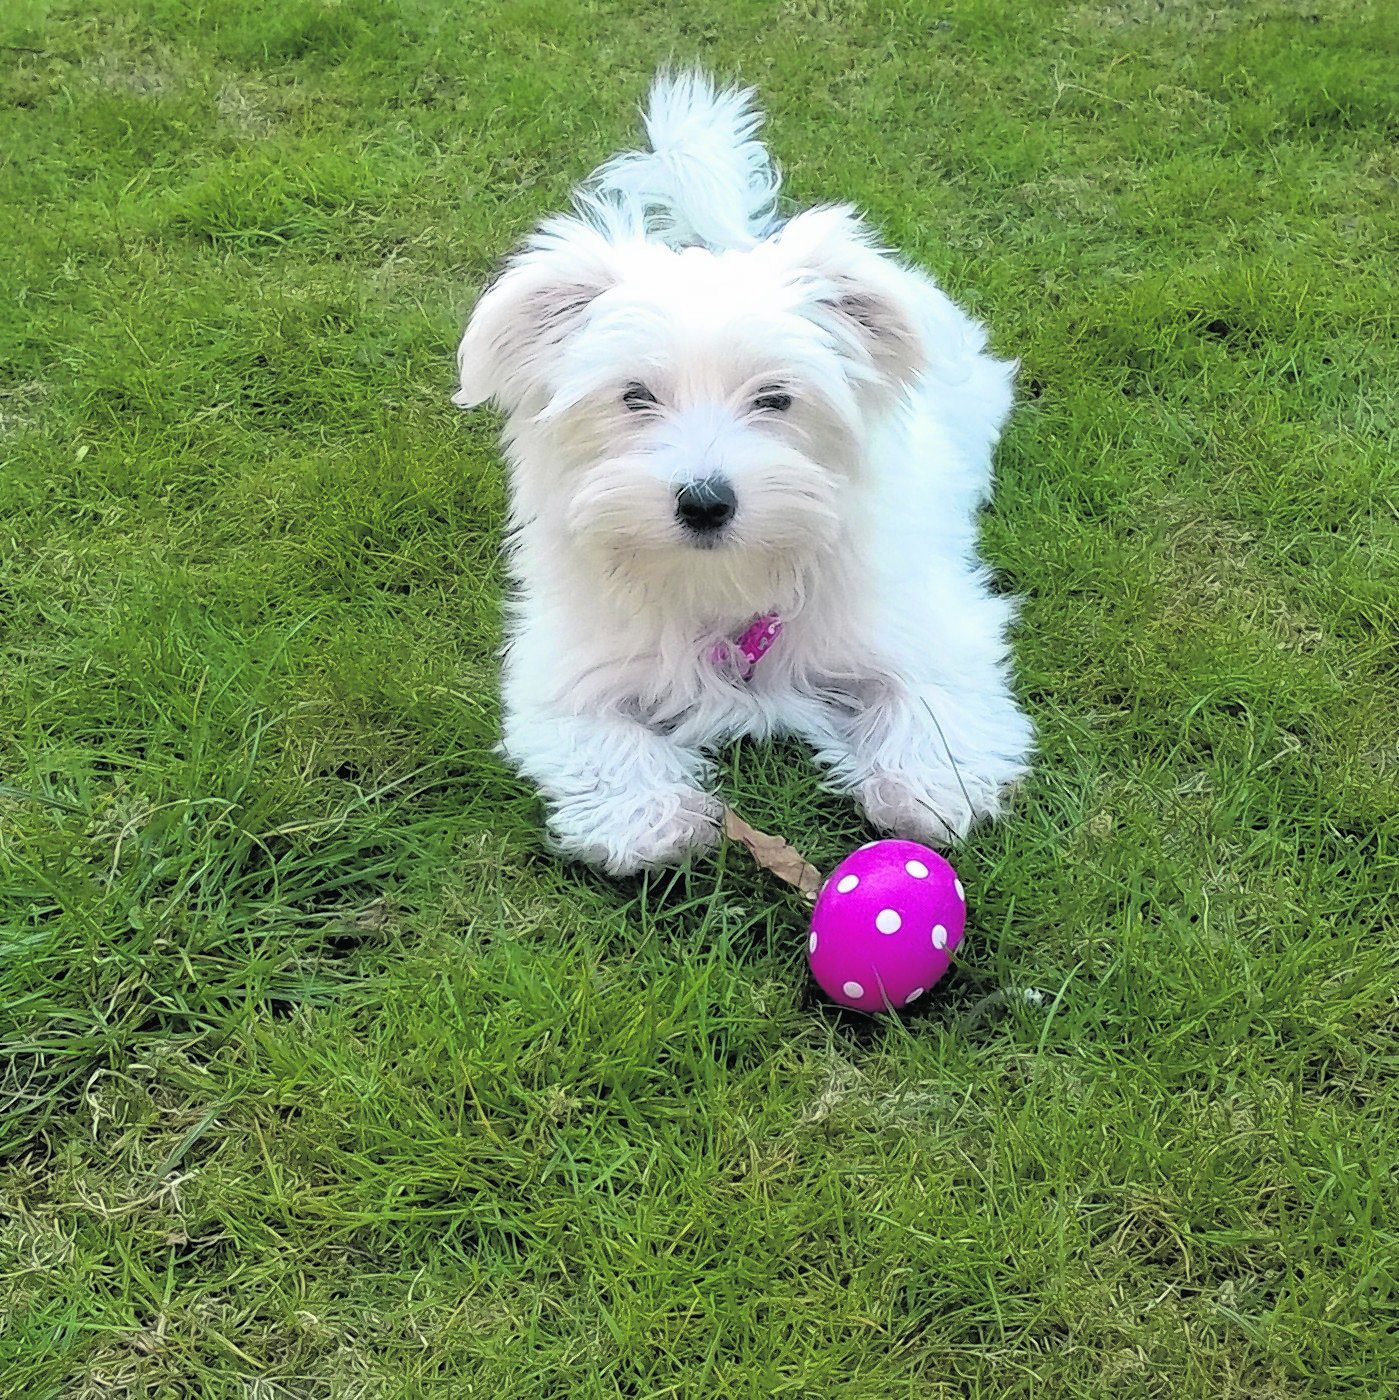 This is Elsa who is 14 weeks old. She is a Breuer Yorkshire terrier and lives with Audrey Mcintosh in Aberdeen.